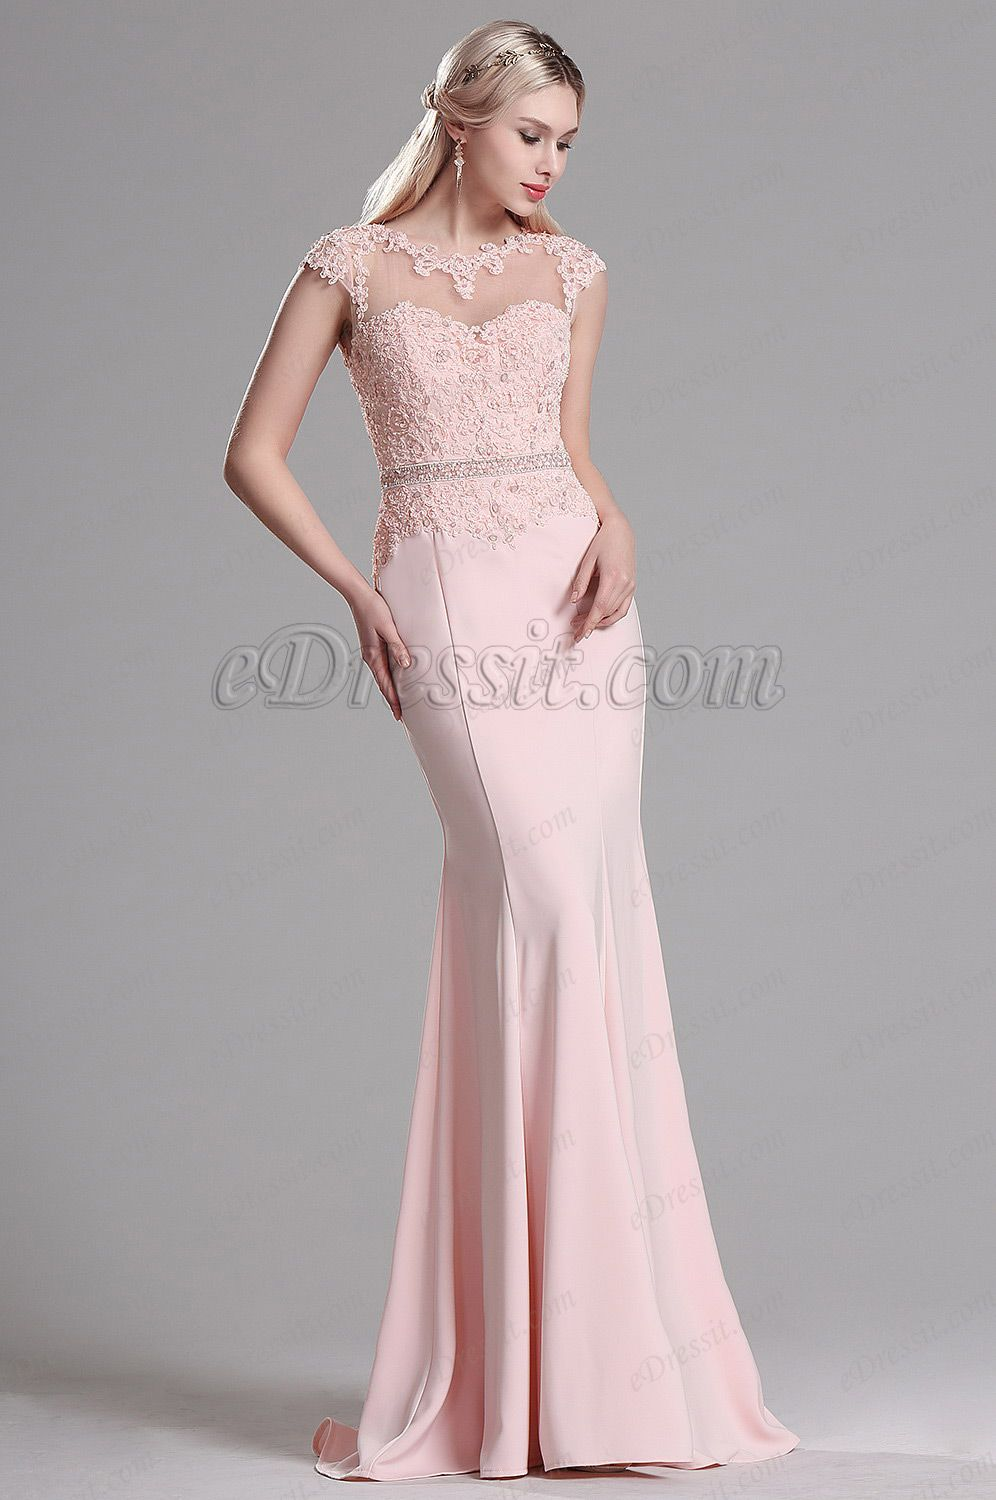 cfd631b9 Pink Lace Beaded Mermaid Evening Dress Prom Gown (36163501) in 2019 ...